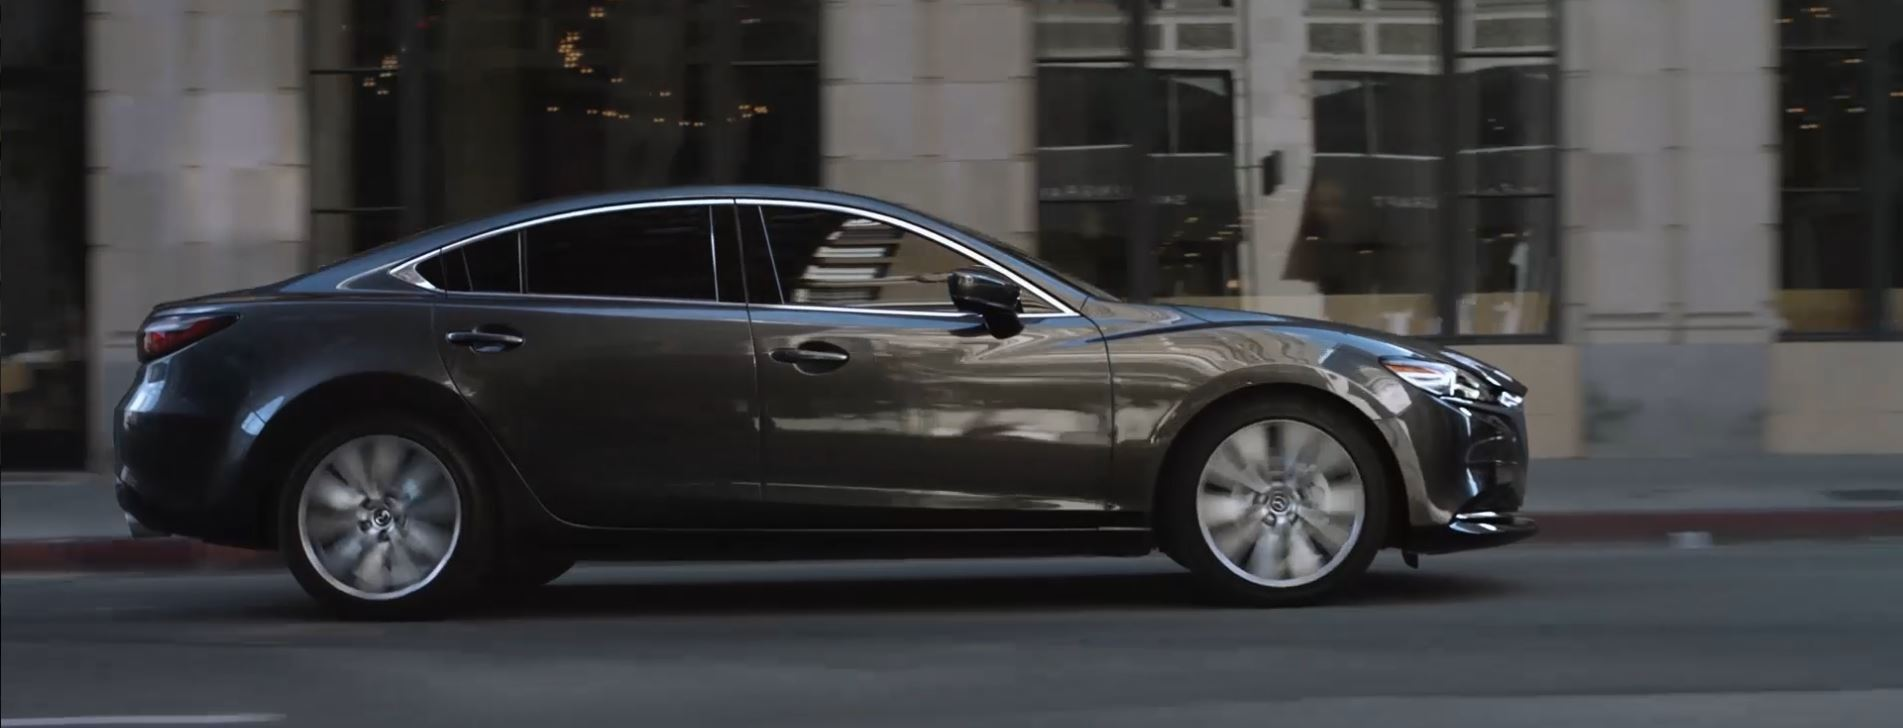 A 2020 Mazda6 driving on a city street